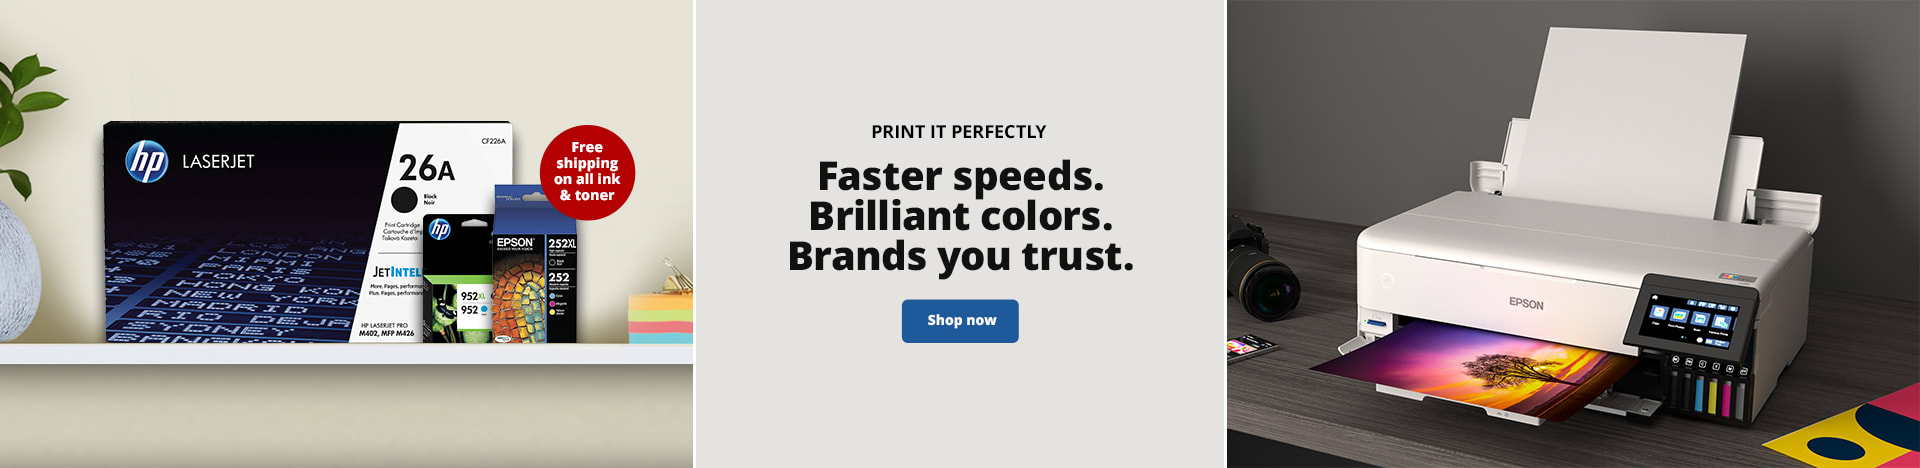 Print it Perfectly. Faster speeds. Brilliant colors. Brands you trust